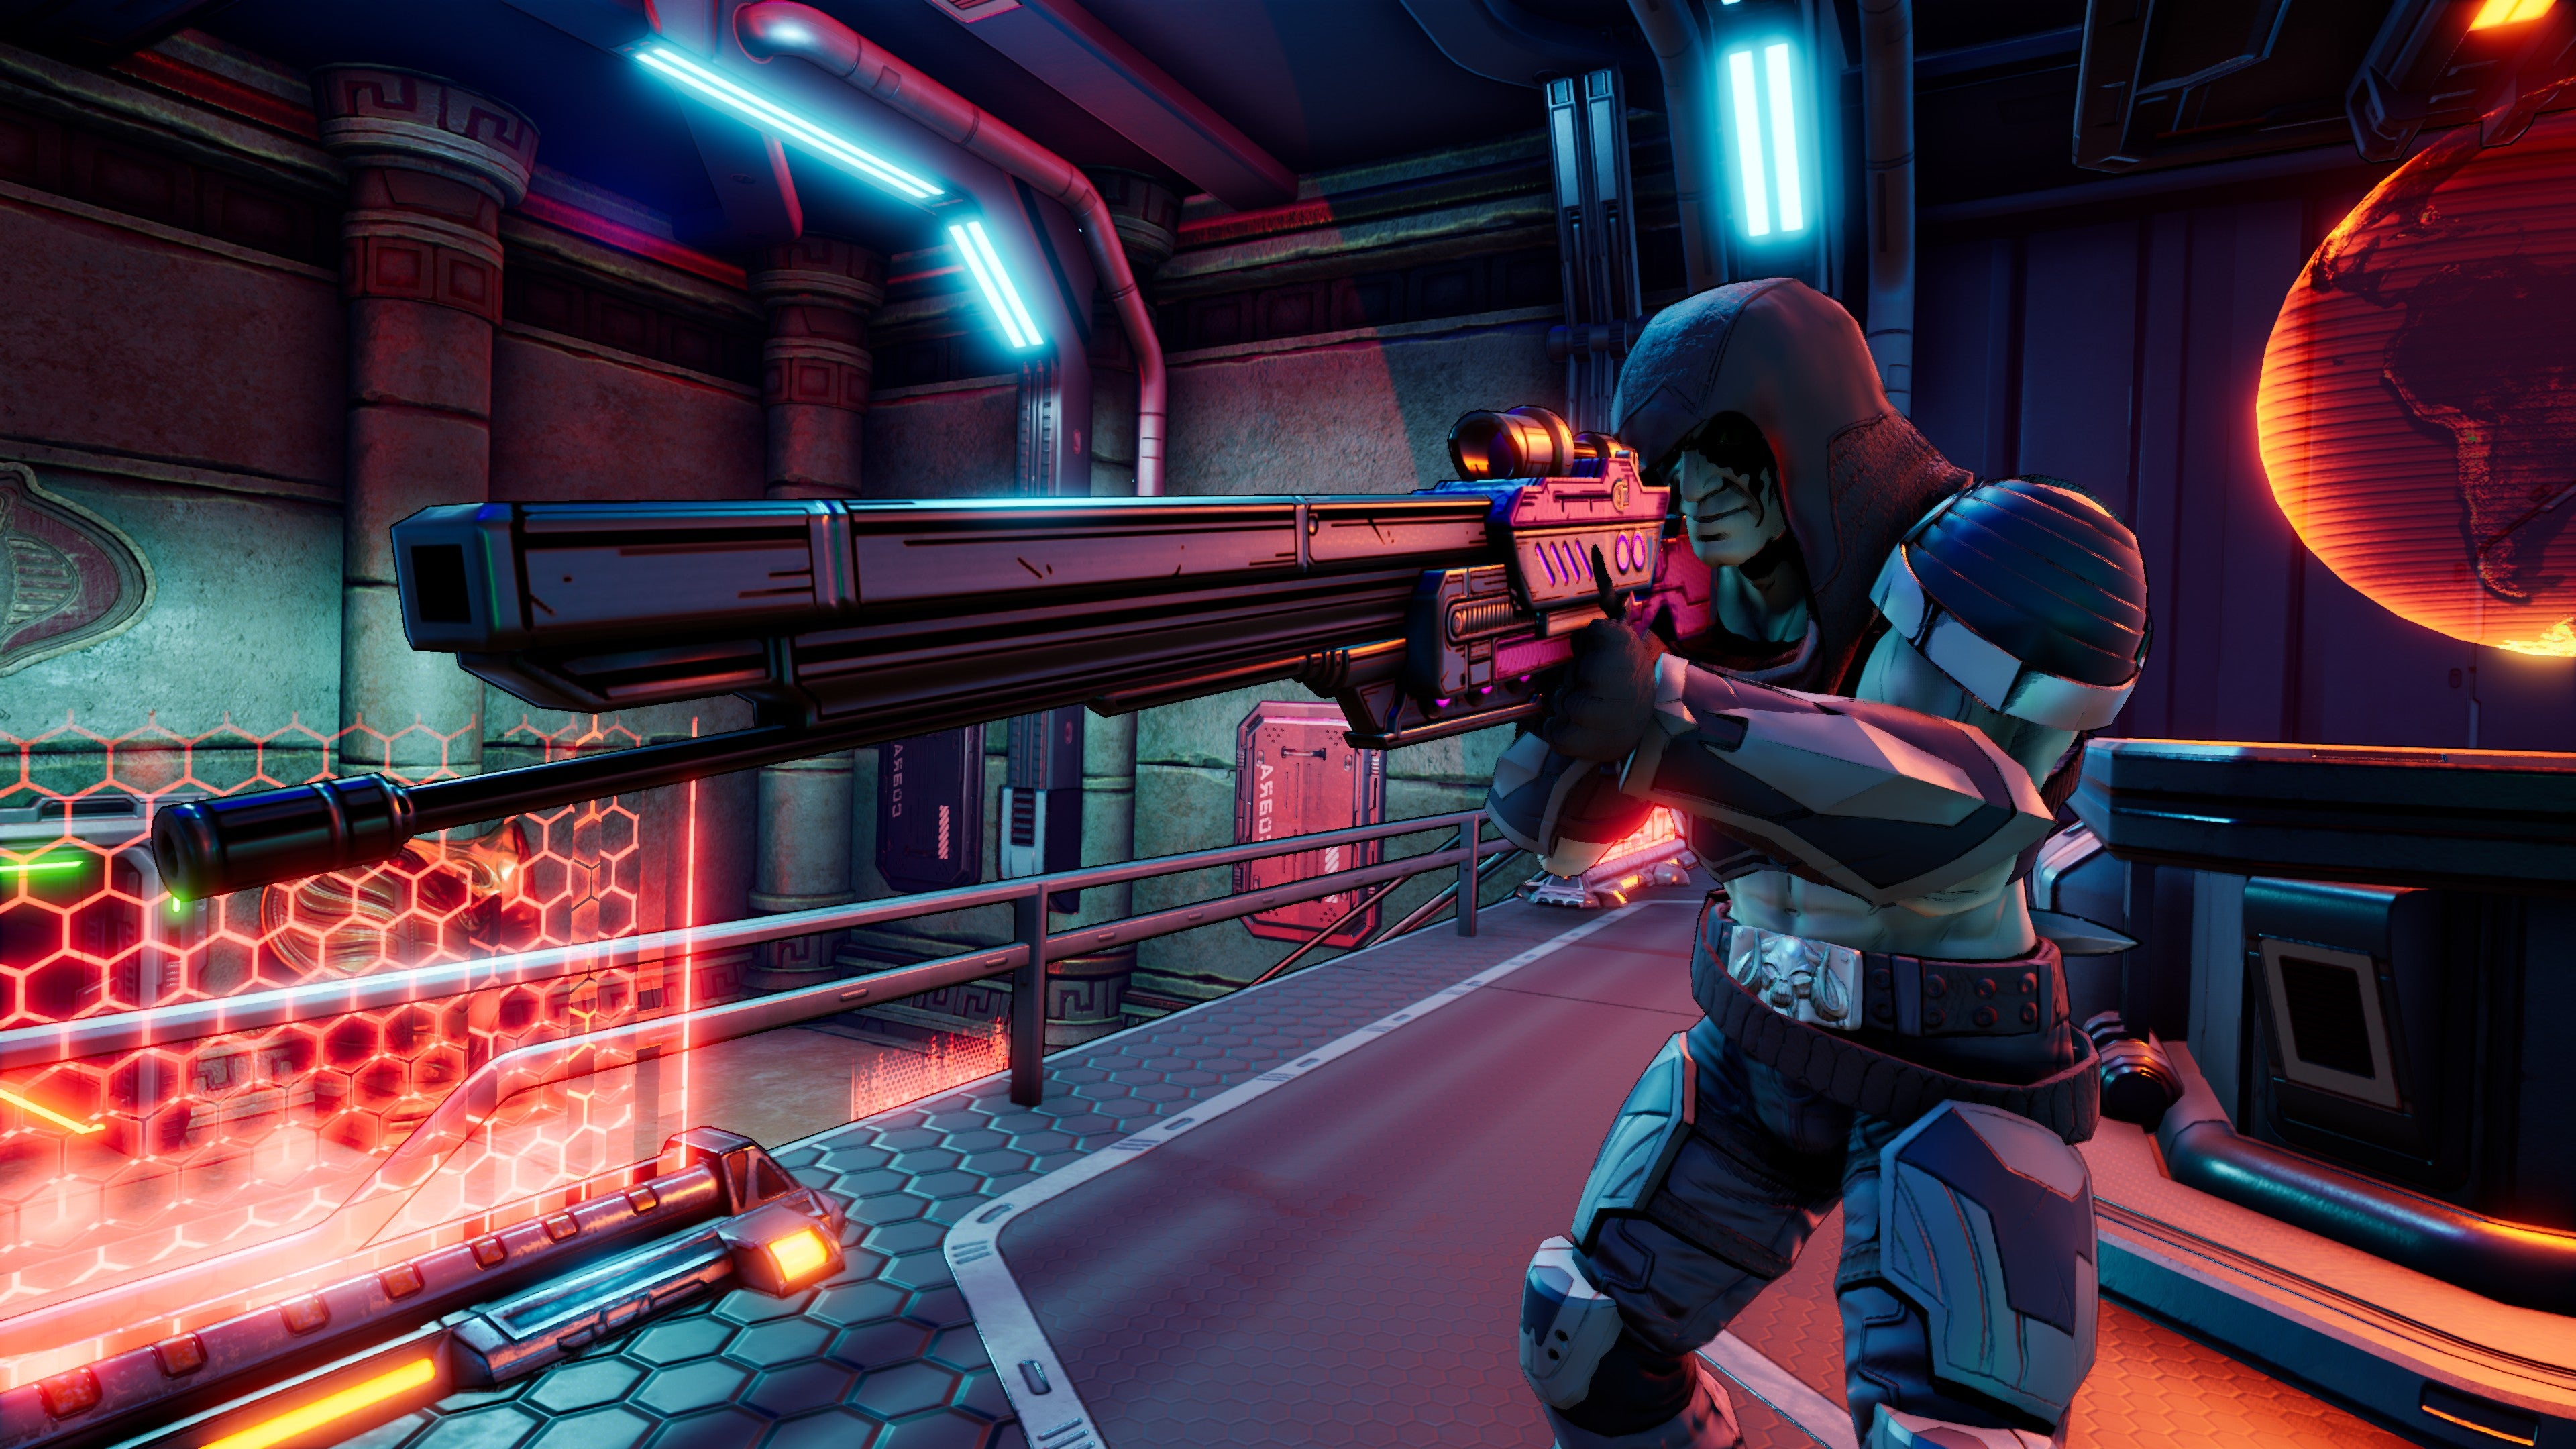 Анонсирована G.I. Joe: Operation Blackout для PS4, Xbox One, Switch и ПК